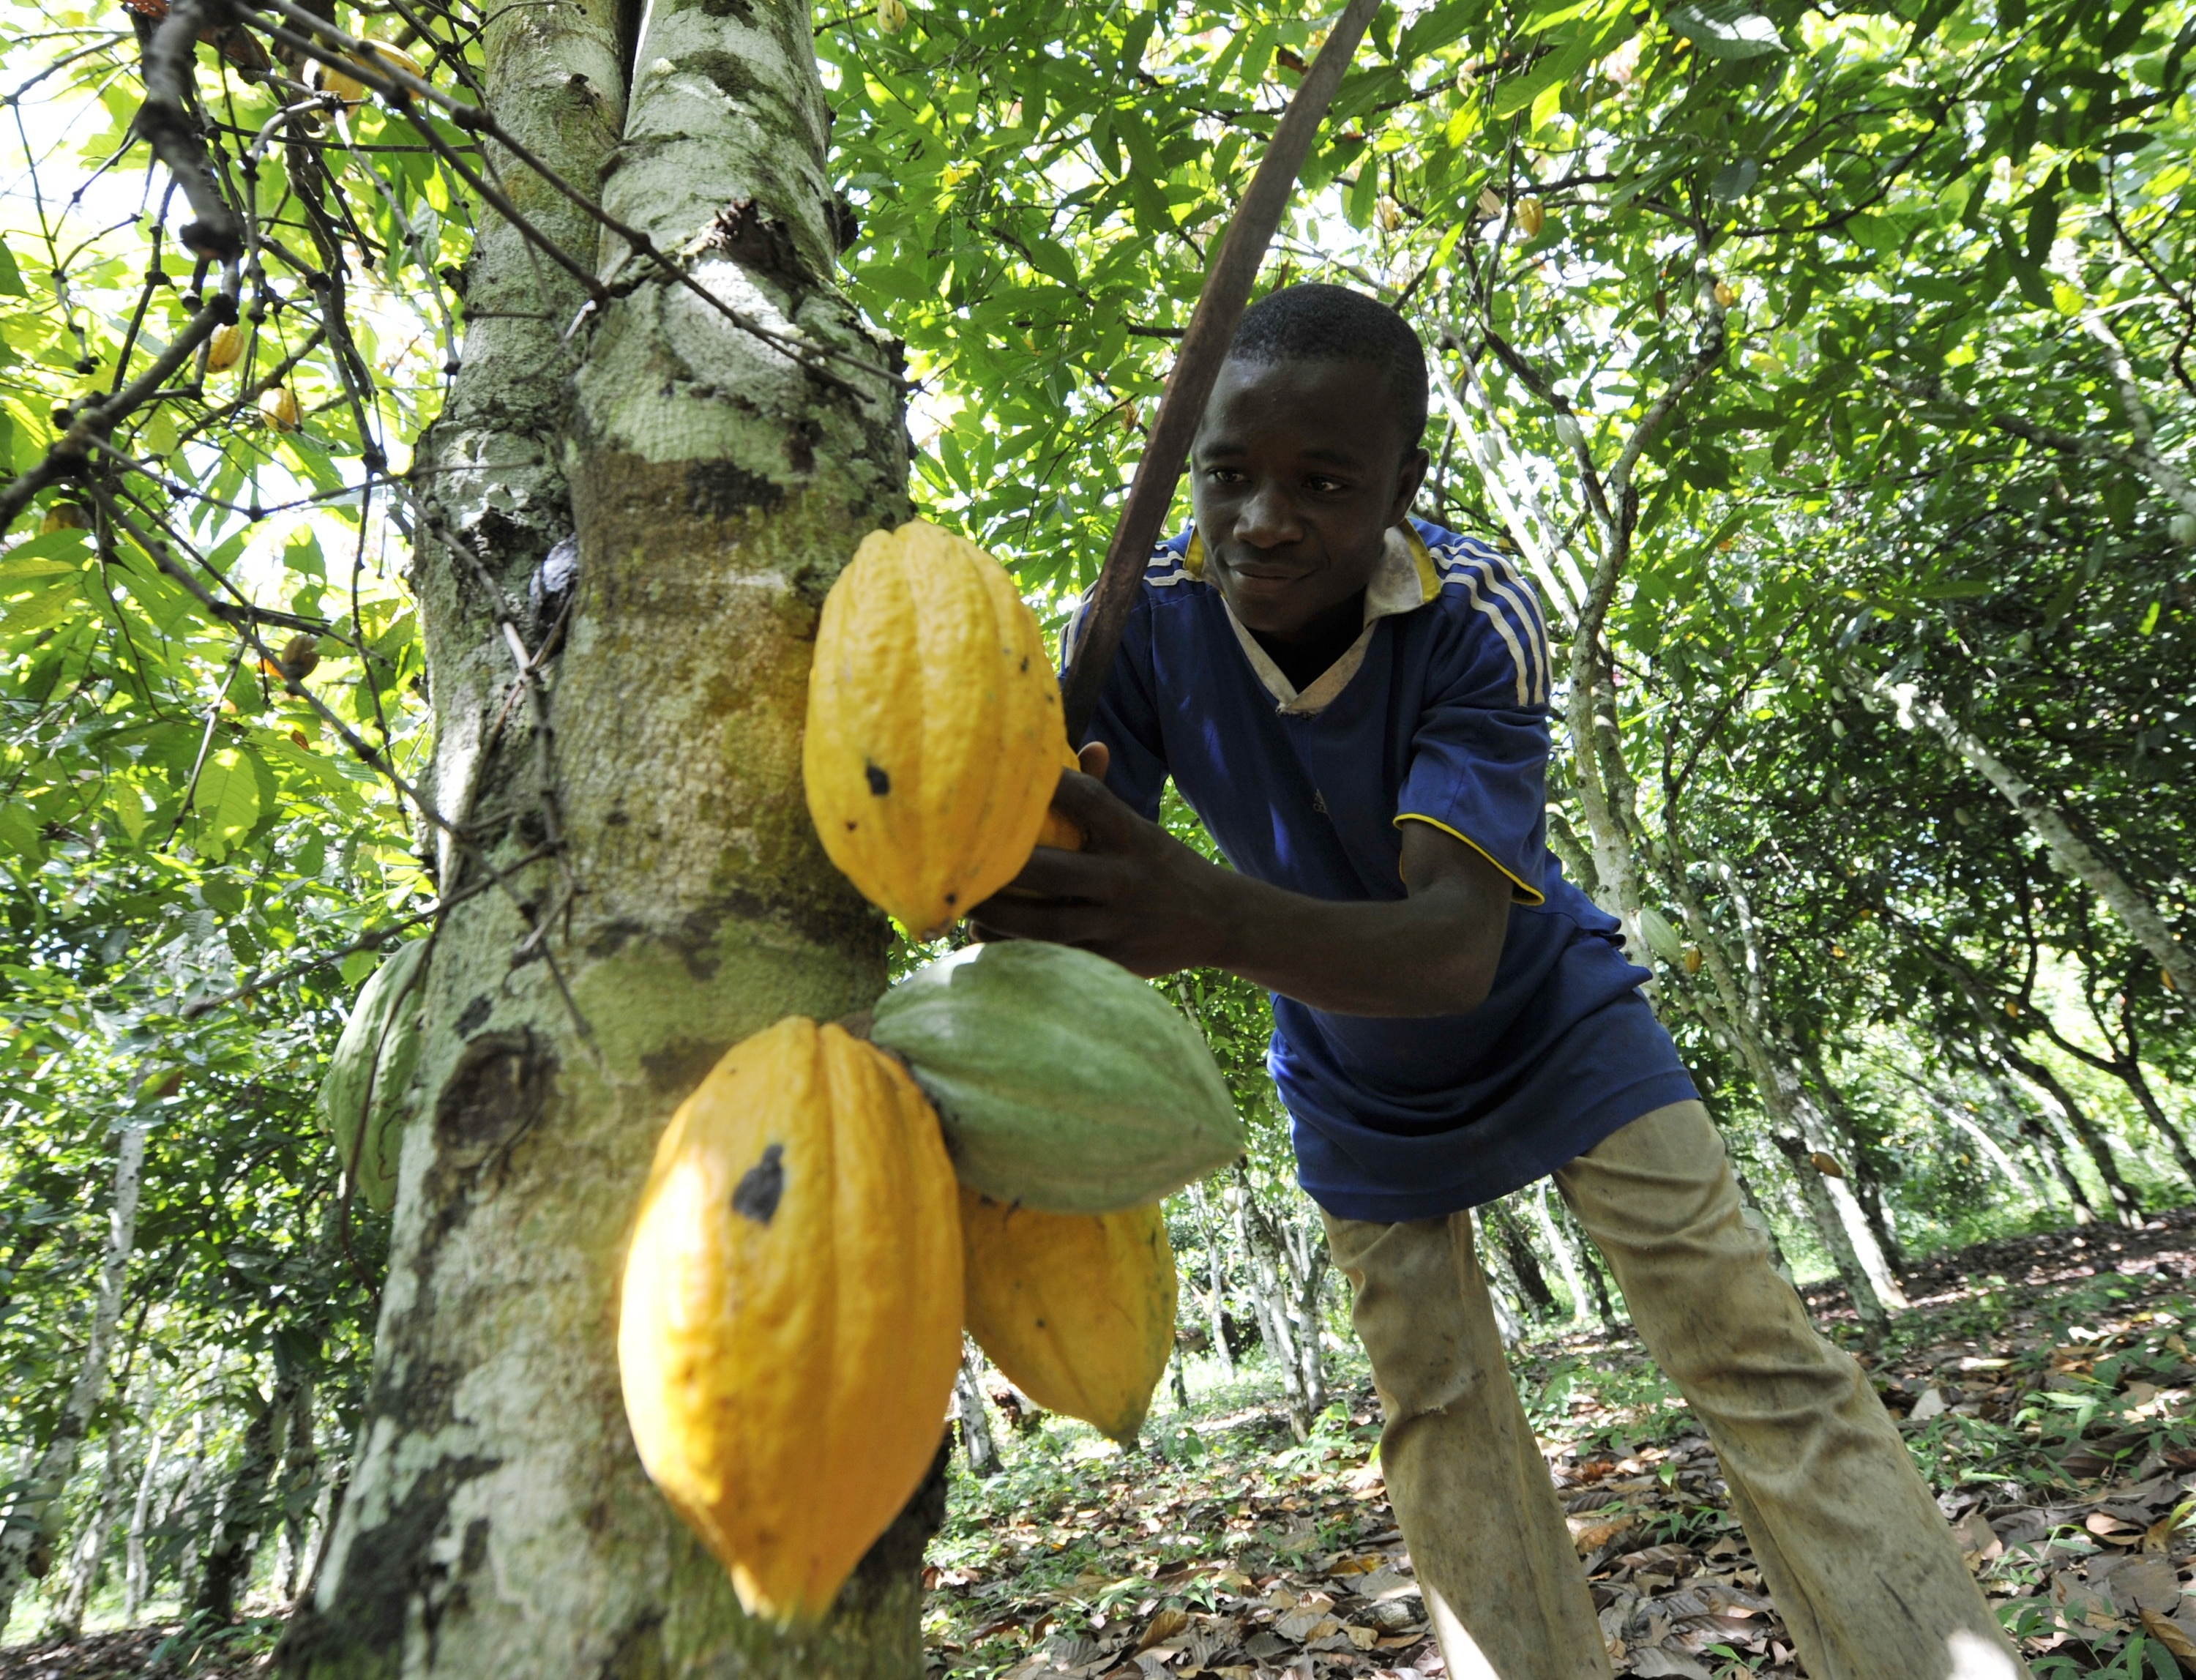 A young employee harvests beans from a cocoa tree in the Ivory Coast.  (AFP/ Sia Kambou)